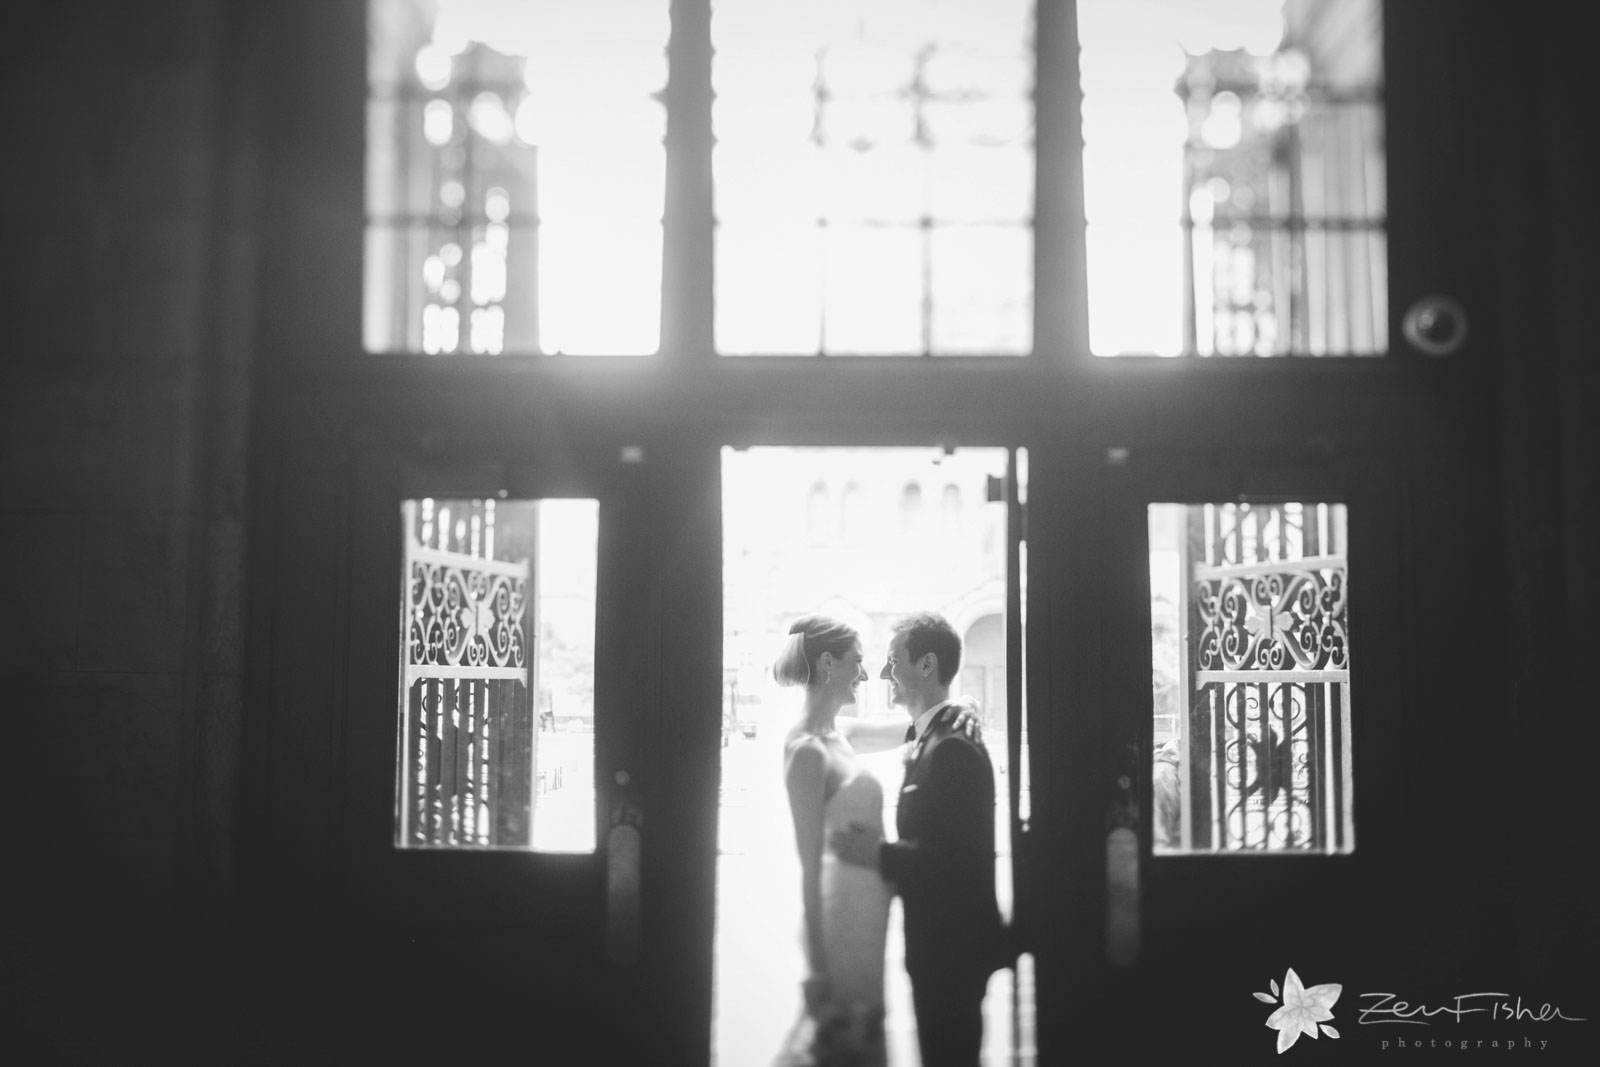 Silhouette of bride and groom holding each other, smiling and looking at each other in doorway.